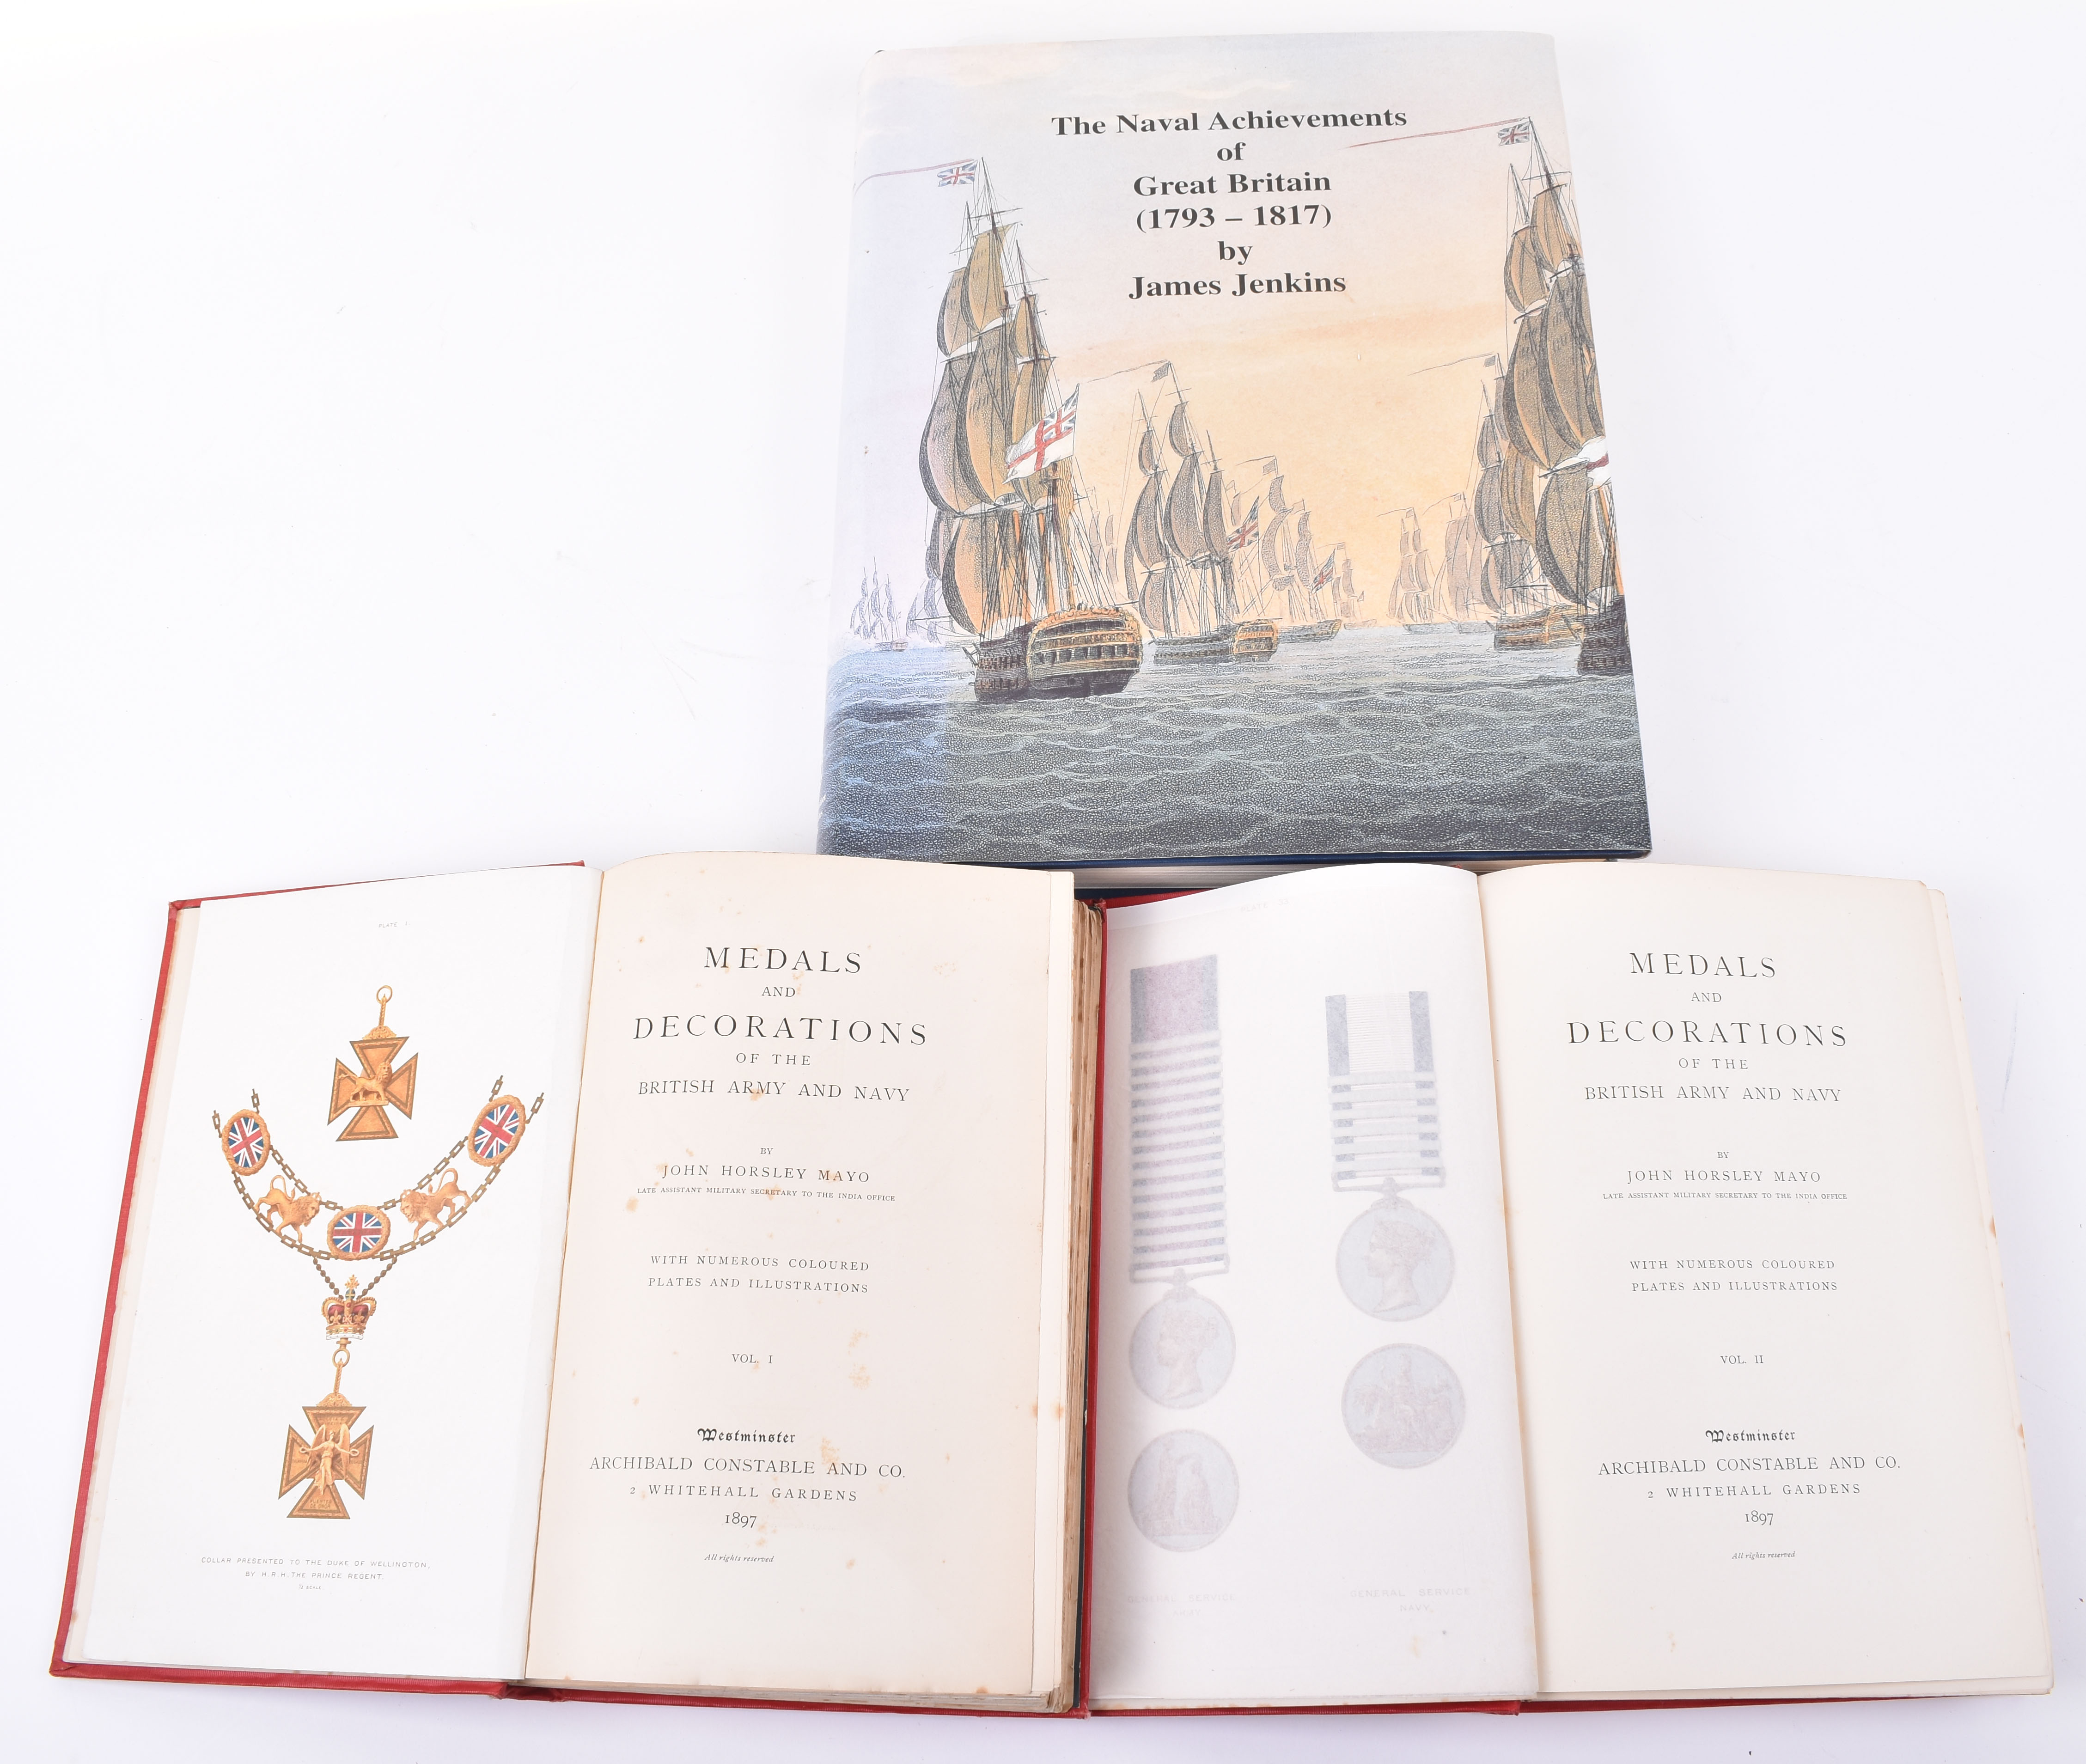 Lot 40 - Mayo, John Horsley. Medals and Decorations of the British Army and Navy Two Volumes 1897